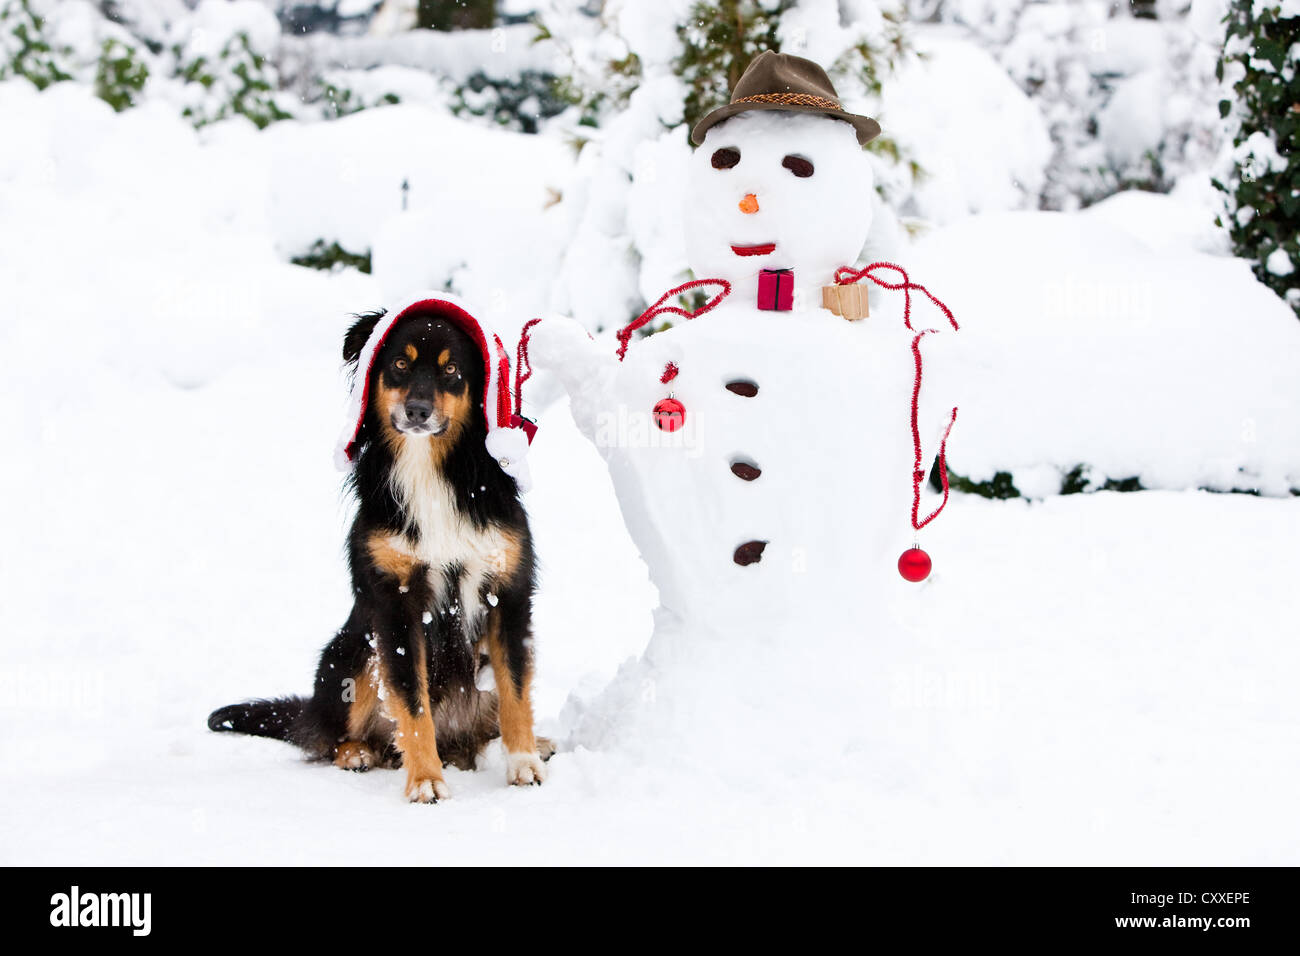 Australian Shepherd with christmas cap sitting next to a snowman with Christmas decorations in the snow, North Tyrol, - Stock Image